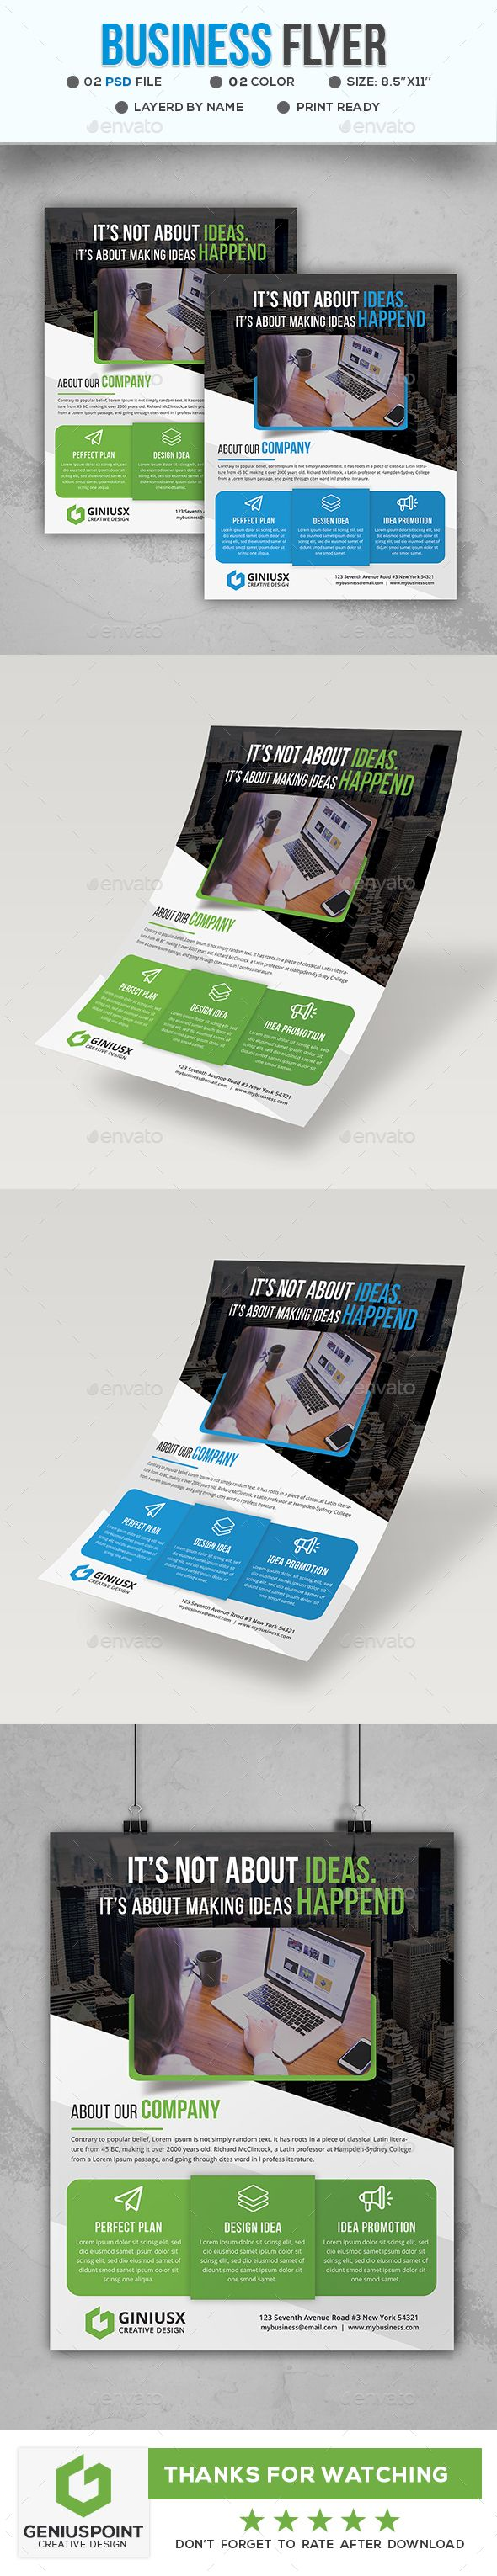 Business #Flyer Template - #Corporate Flyers